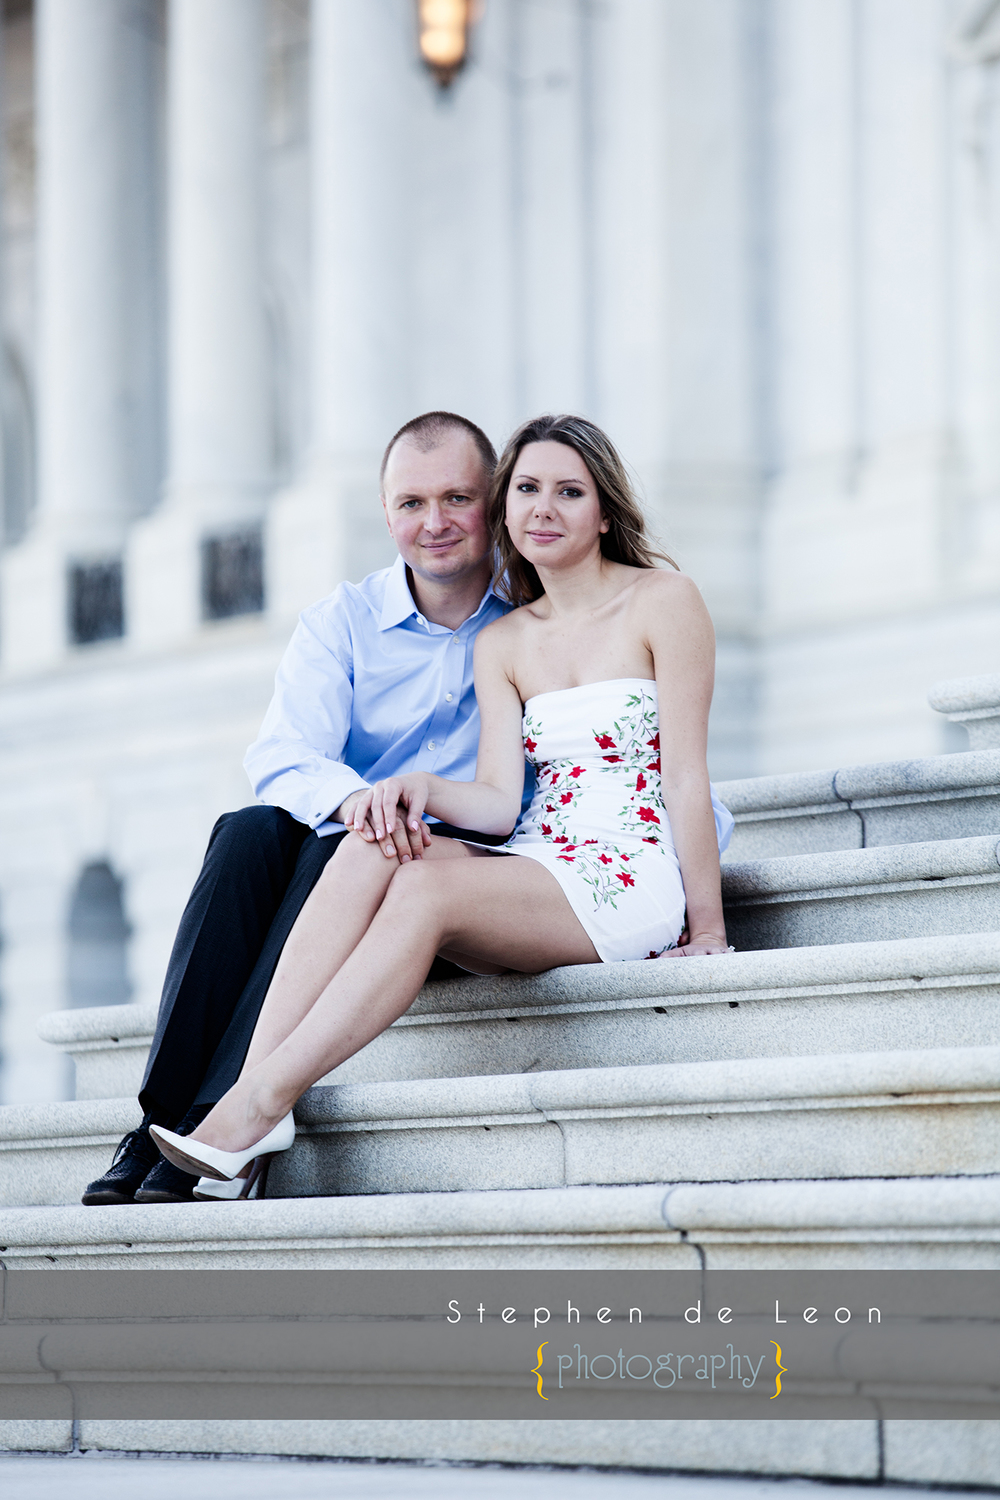 Stephen_de_Leon_Capitol_Engagement_Photography04.jpg